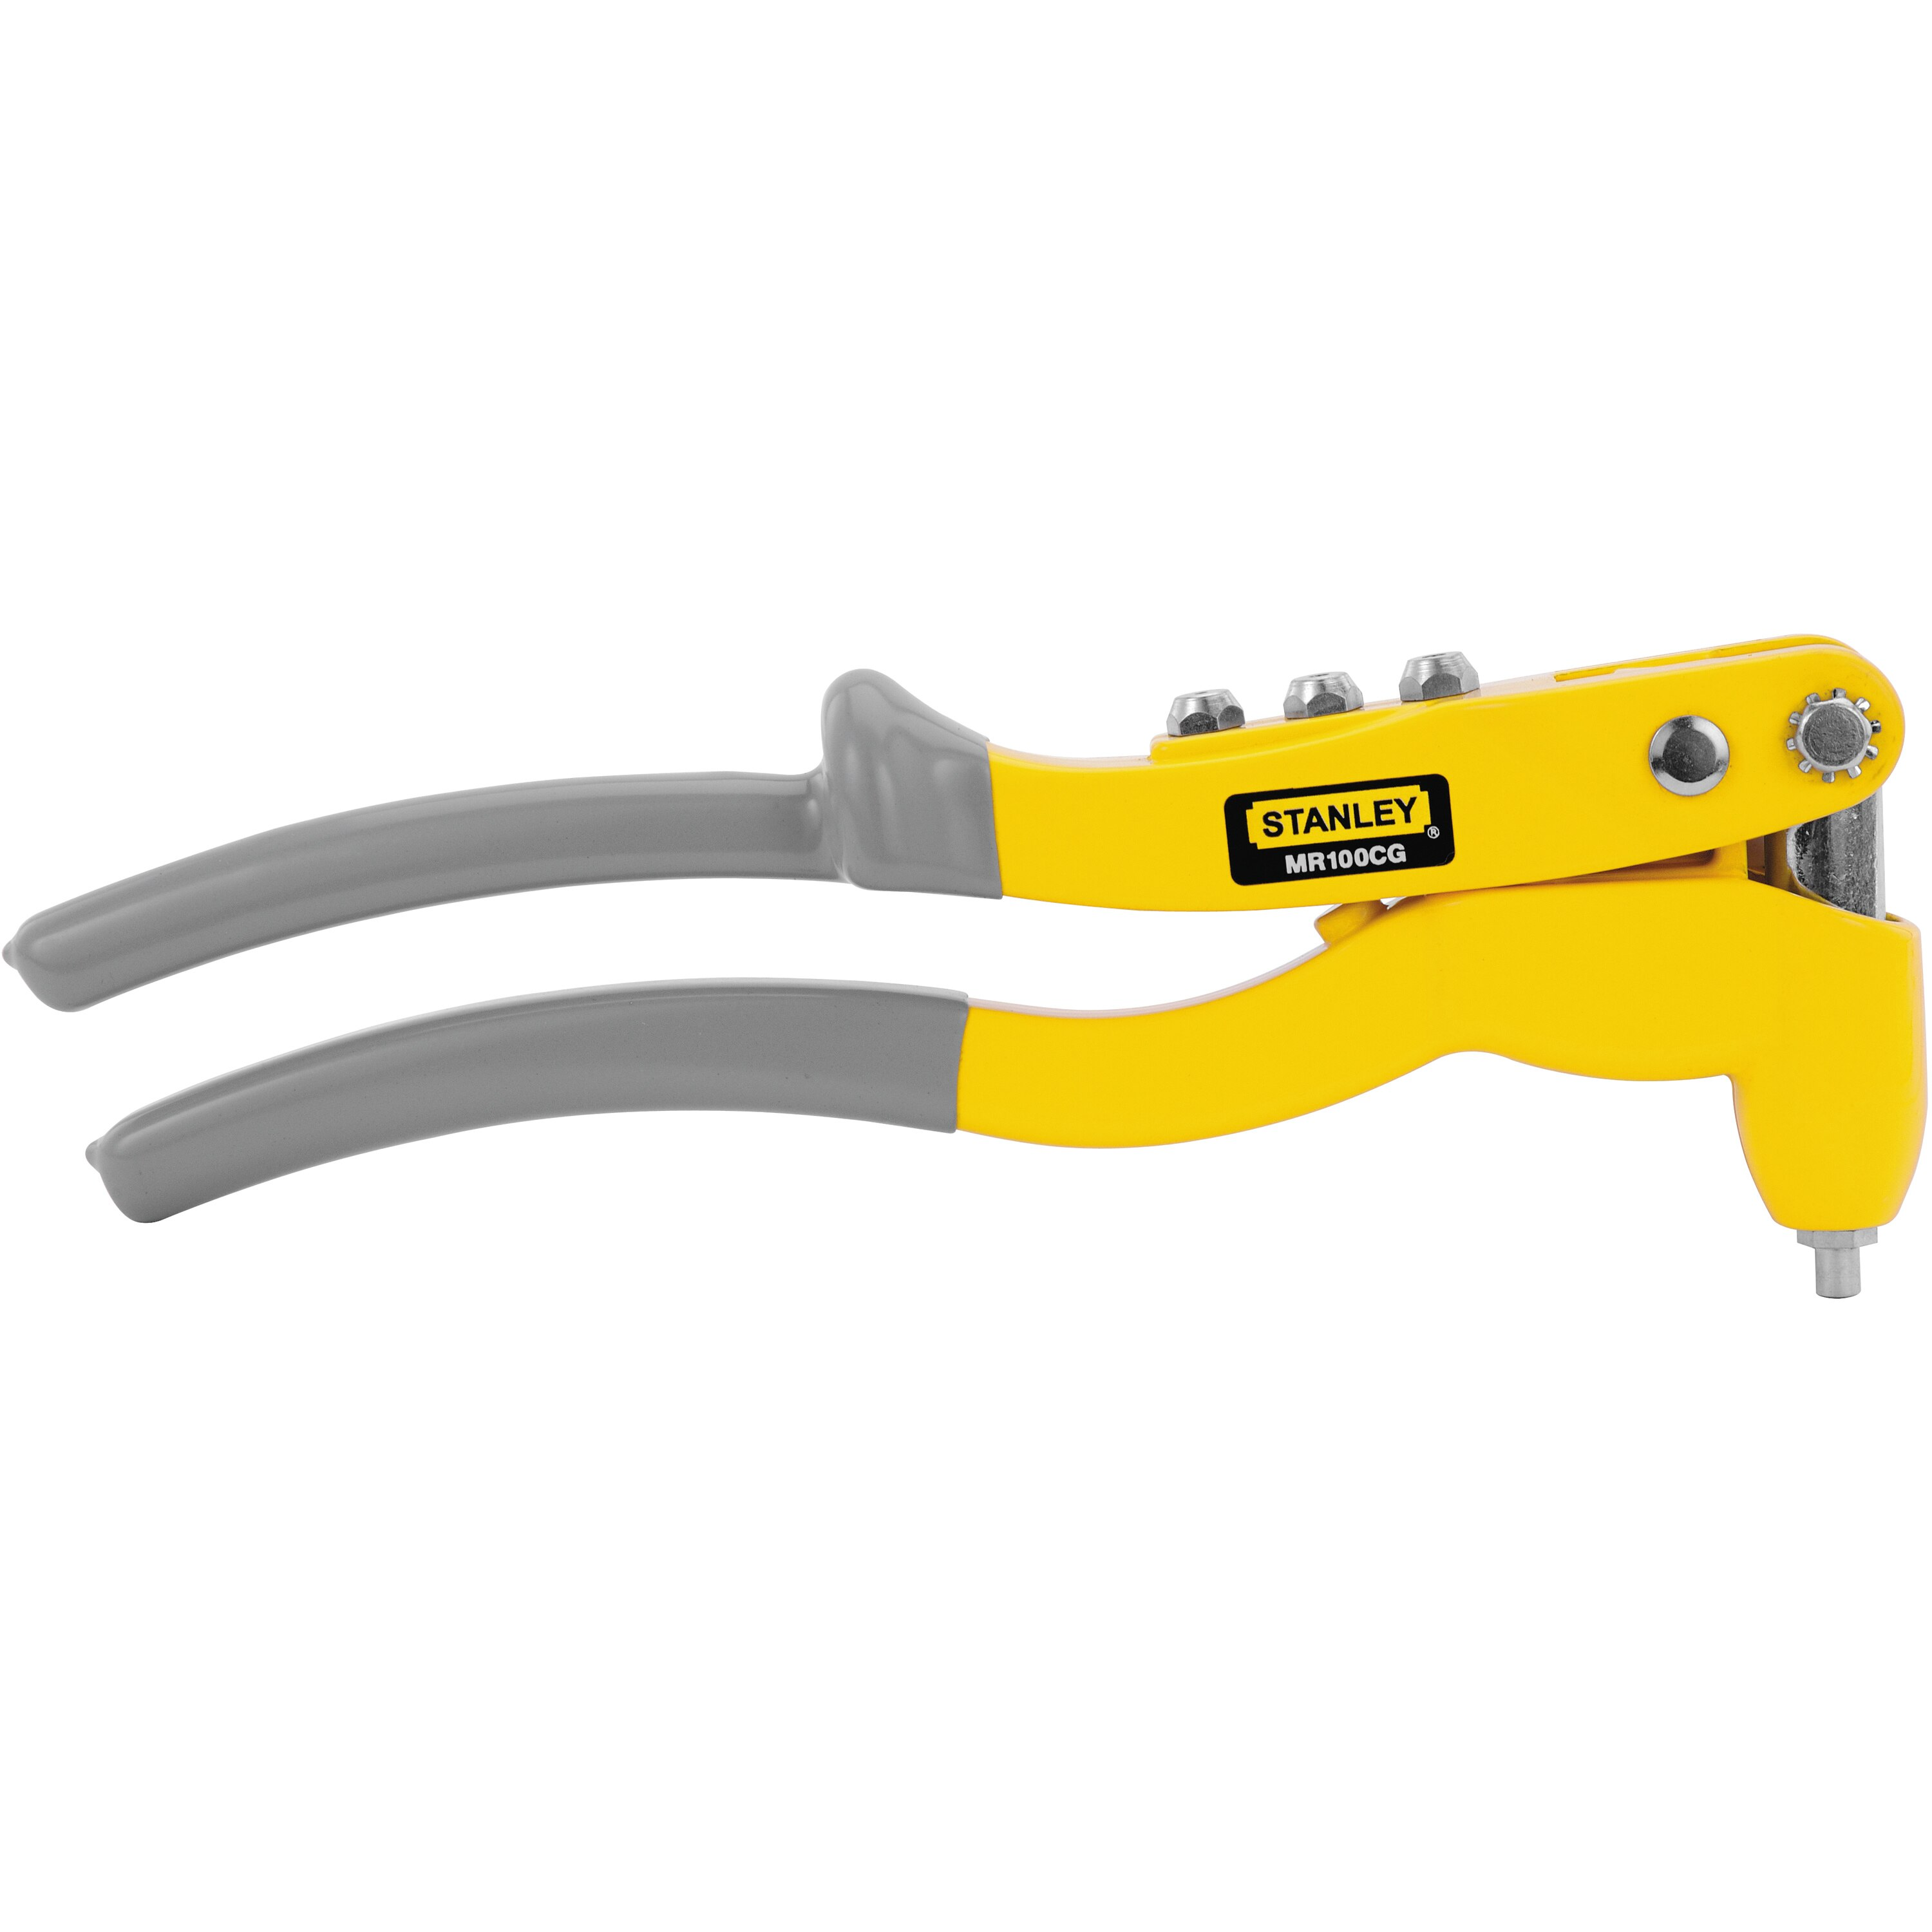 Stanley Tools - HeavyDuty Riveter - MR100CG